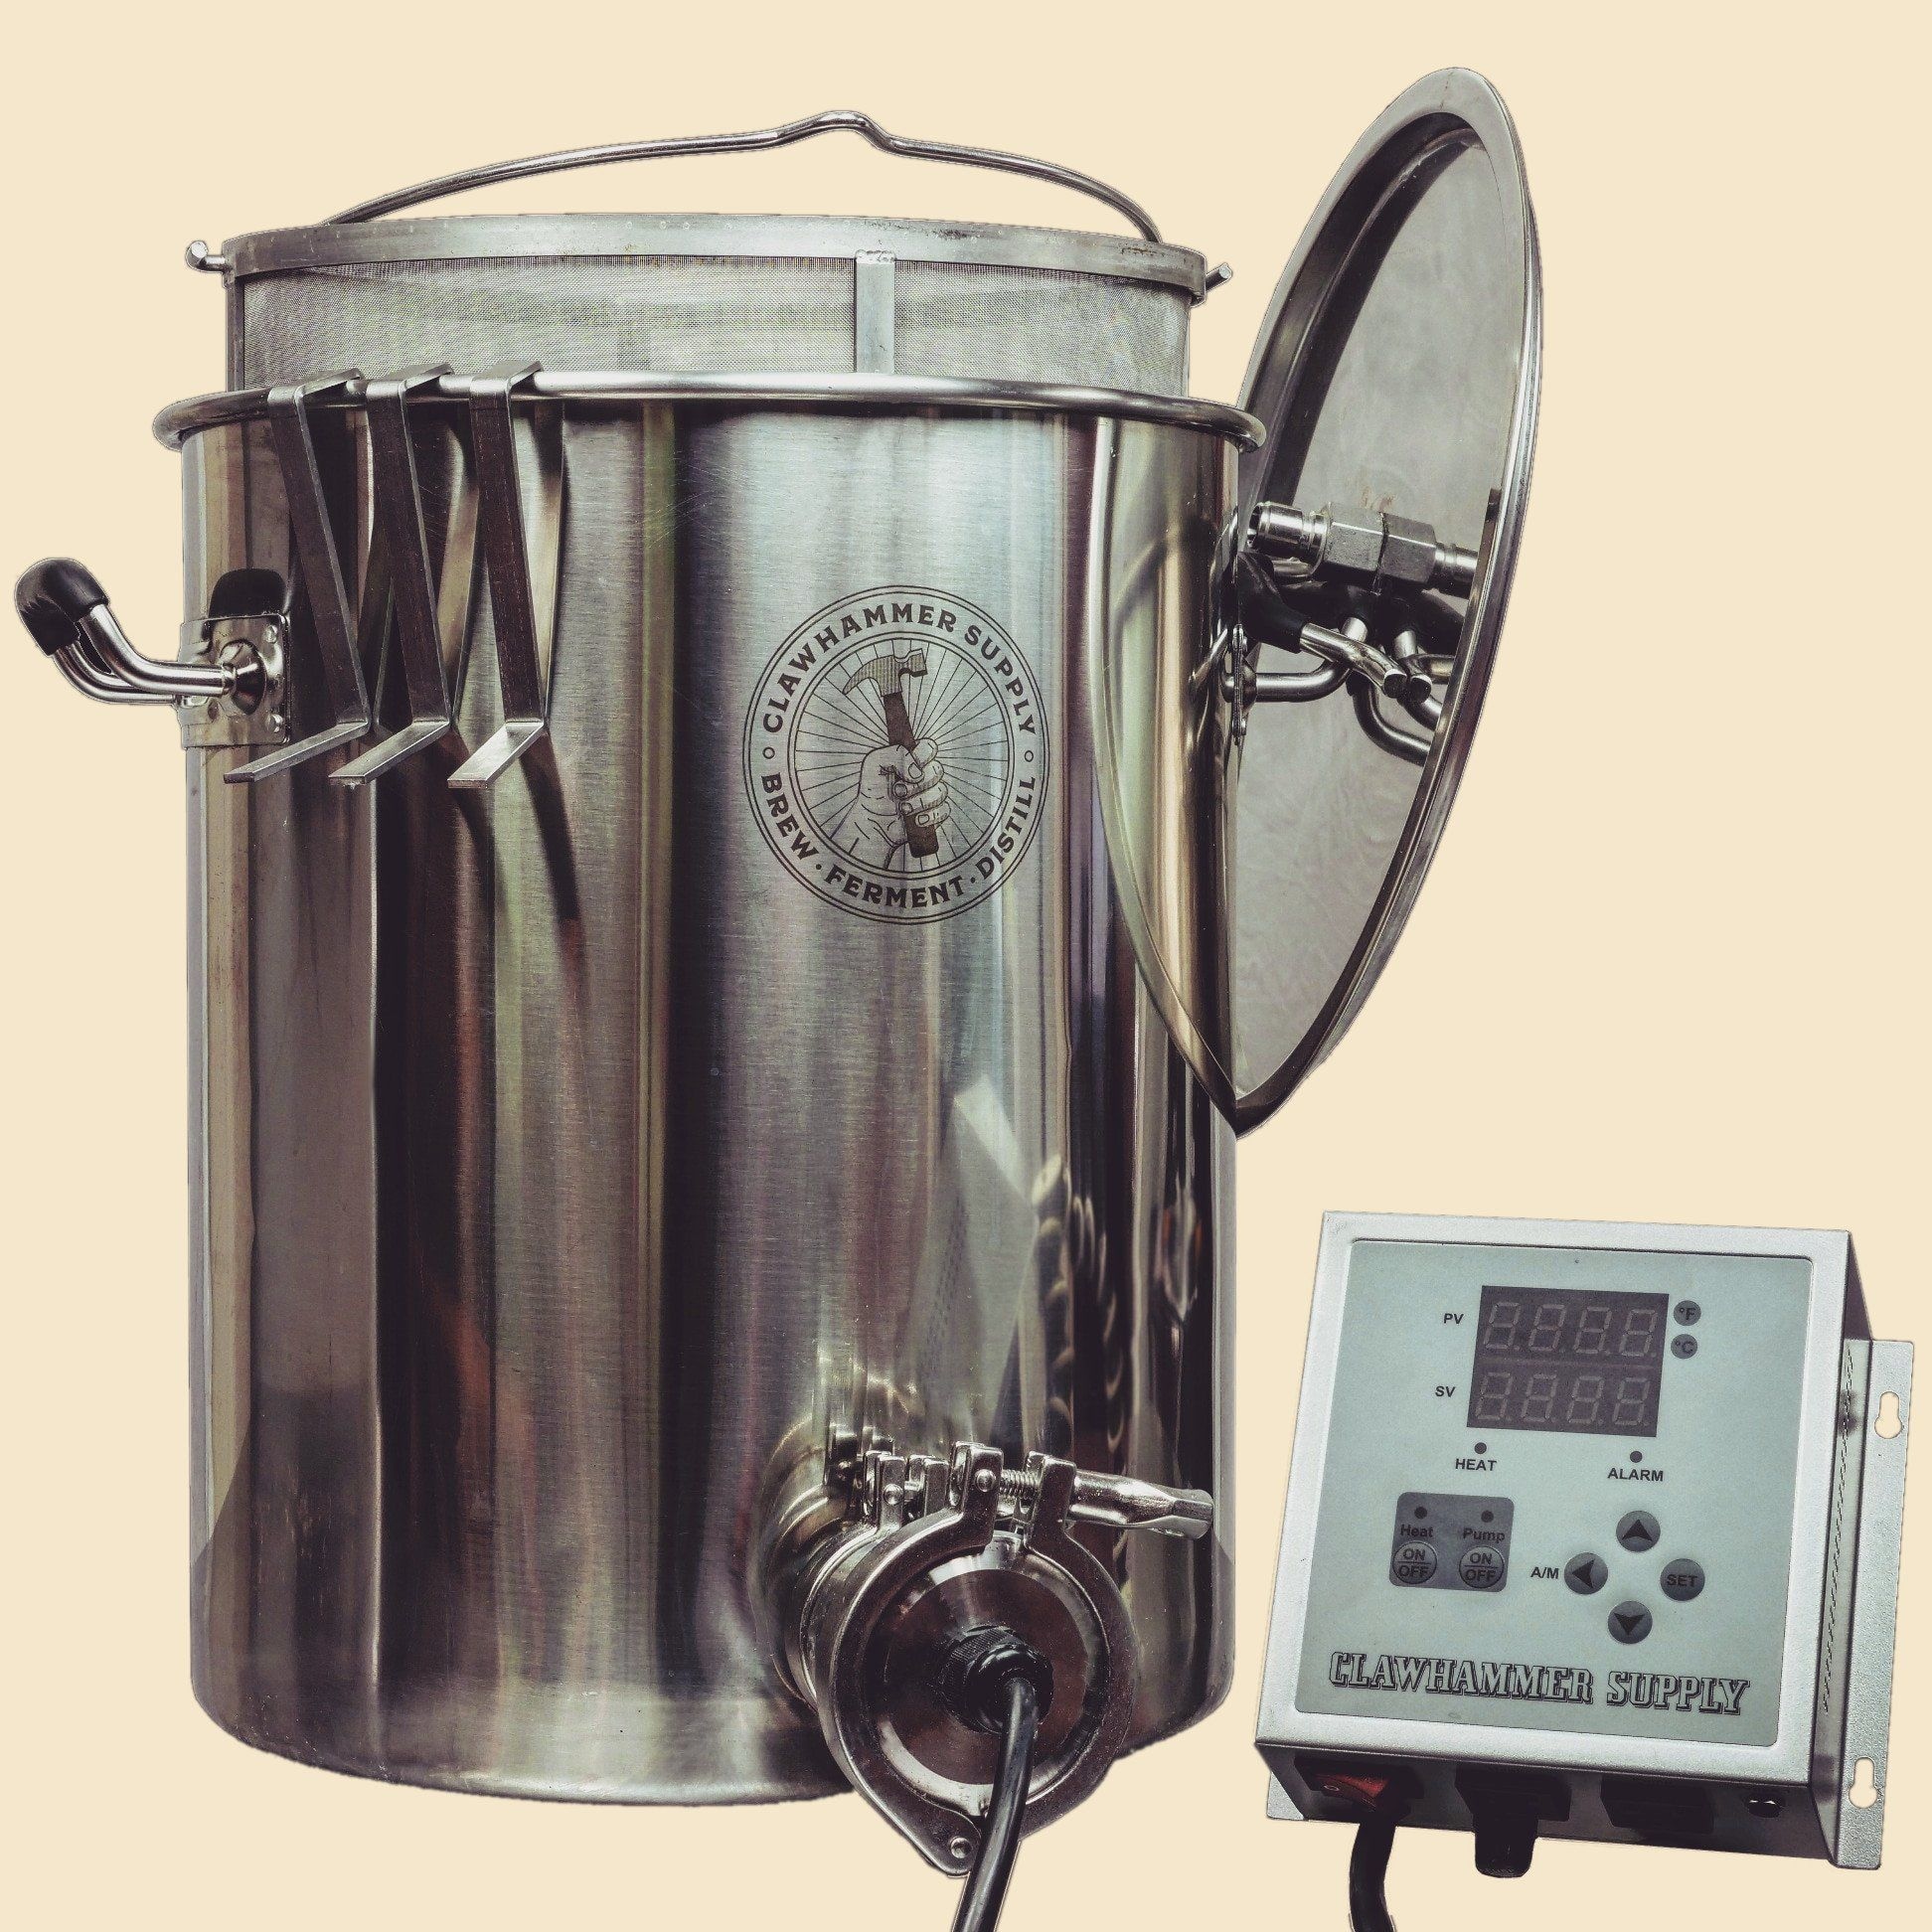 10 Gallon Electric Home Brewing System 120v Biab Home Brewing Home Brewery Brewing